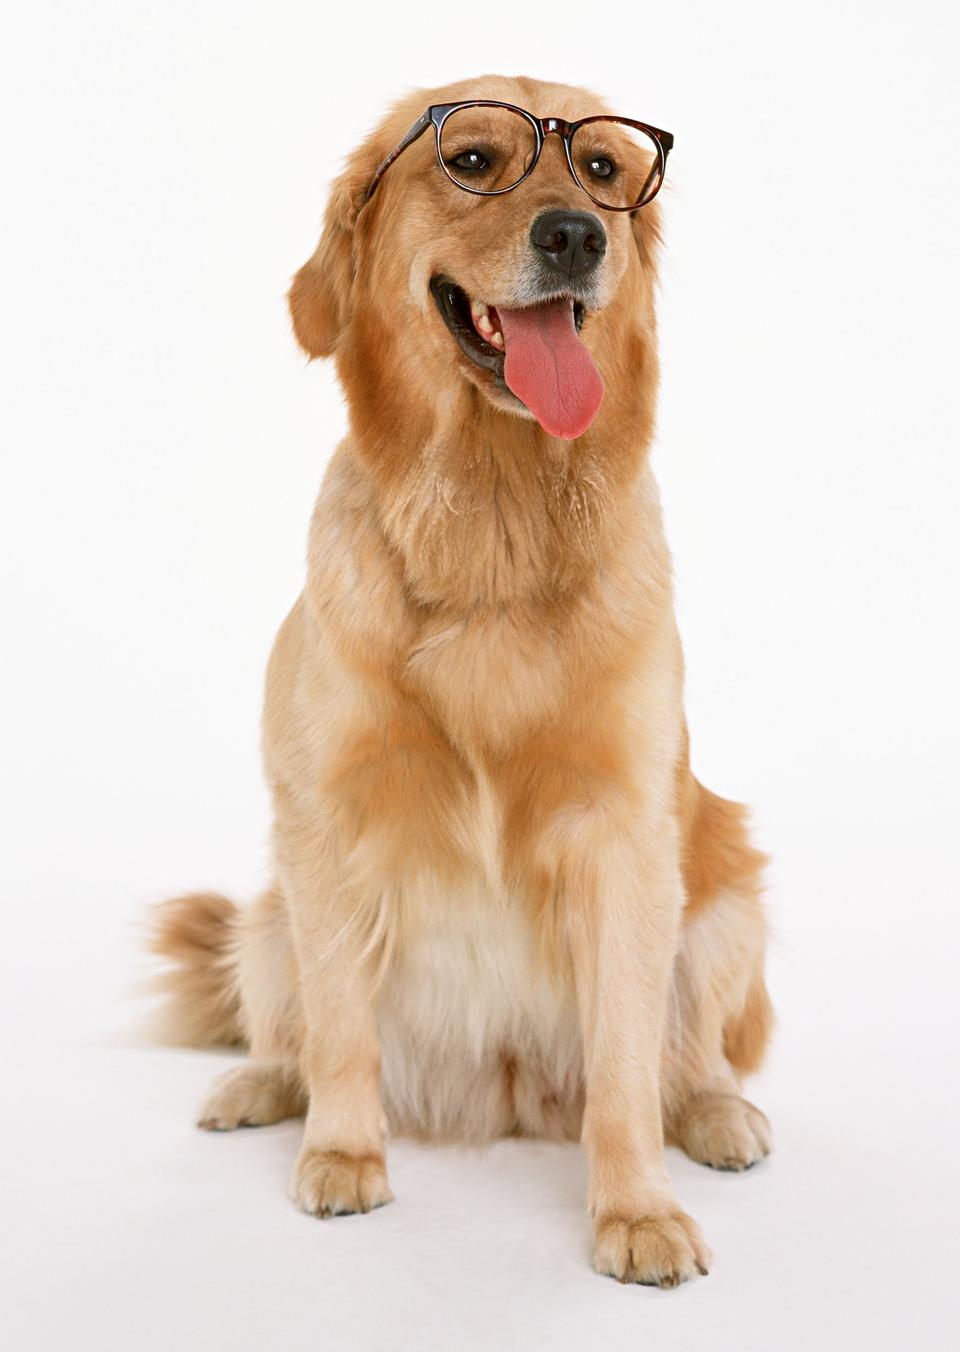 Free download high resolution image - free image free photo free stock image public domain picture  Golden retriever pet dog laying down